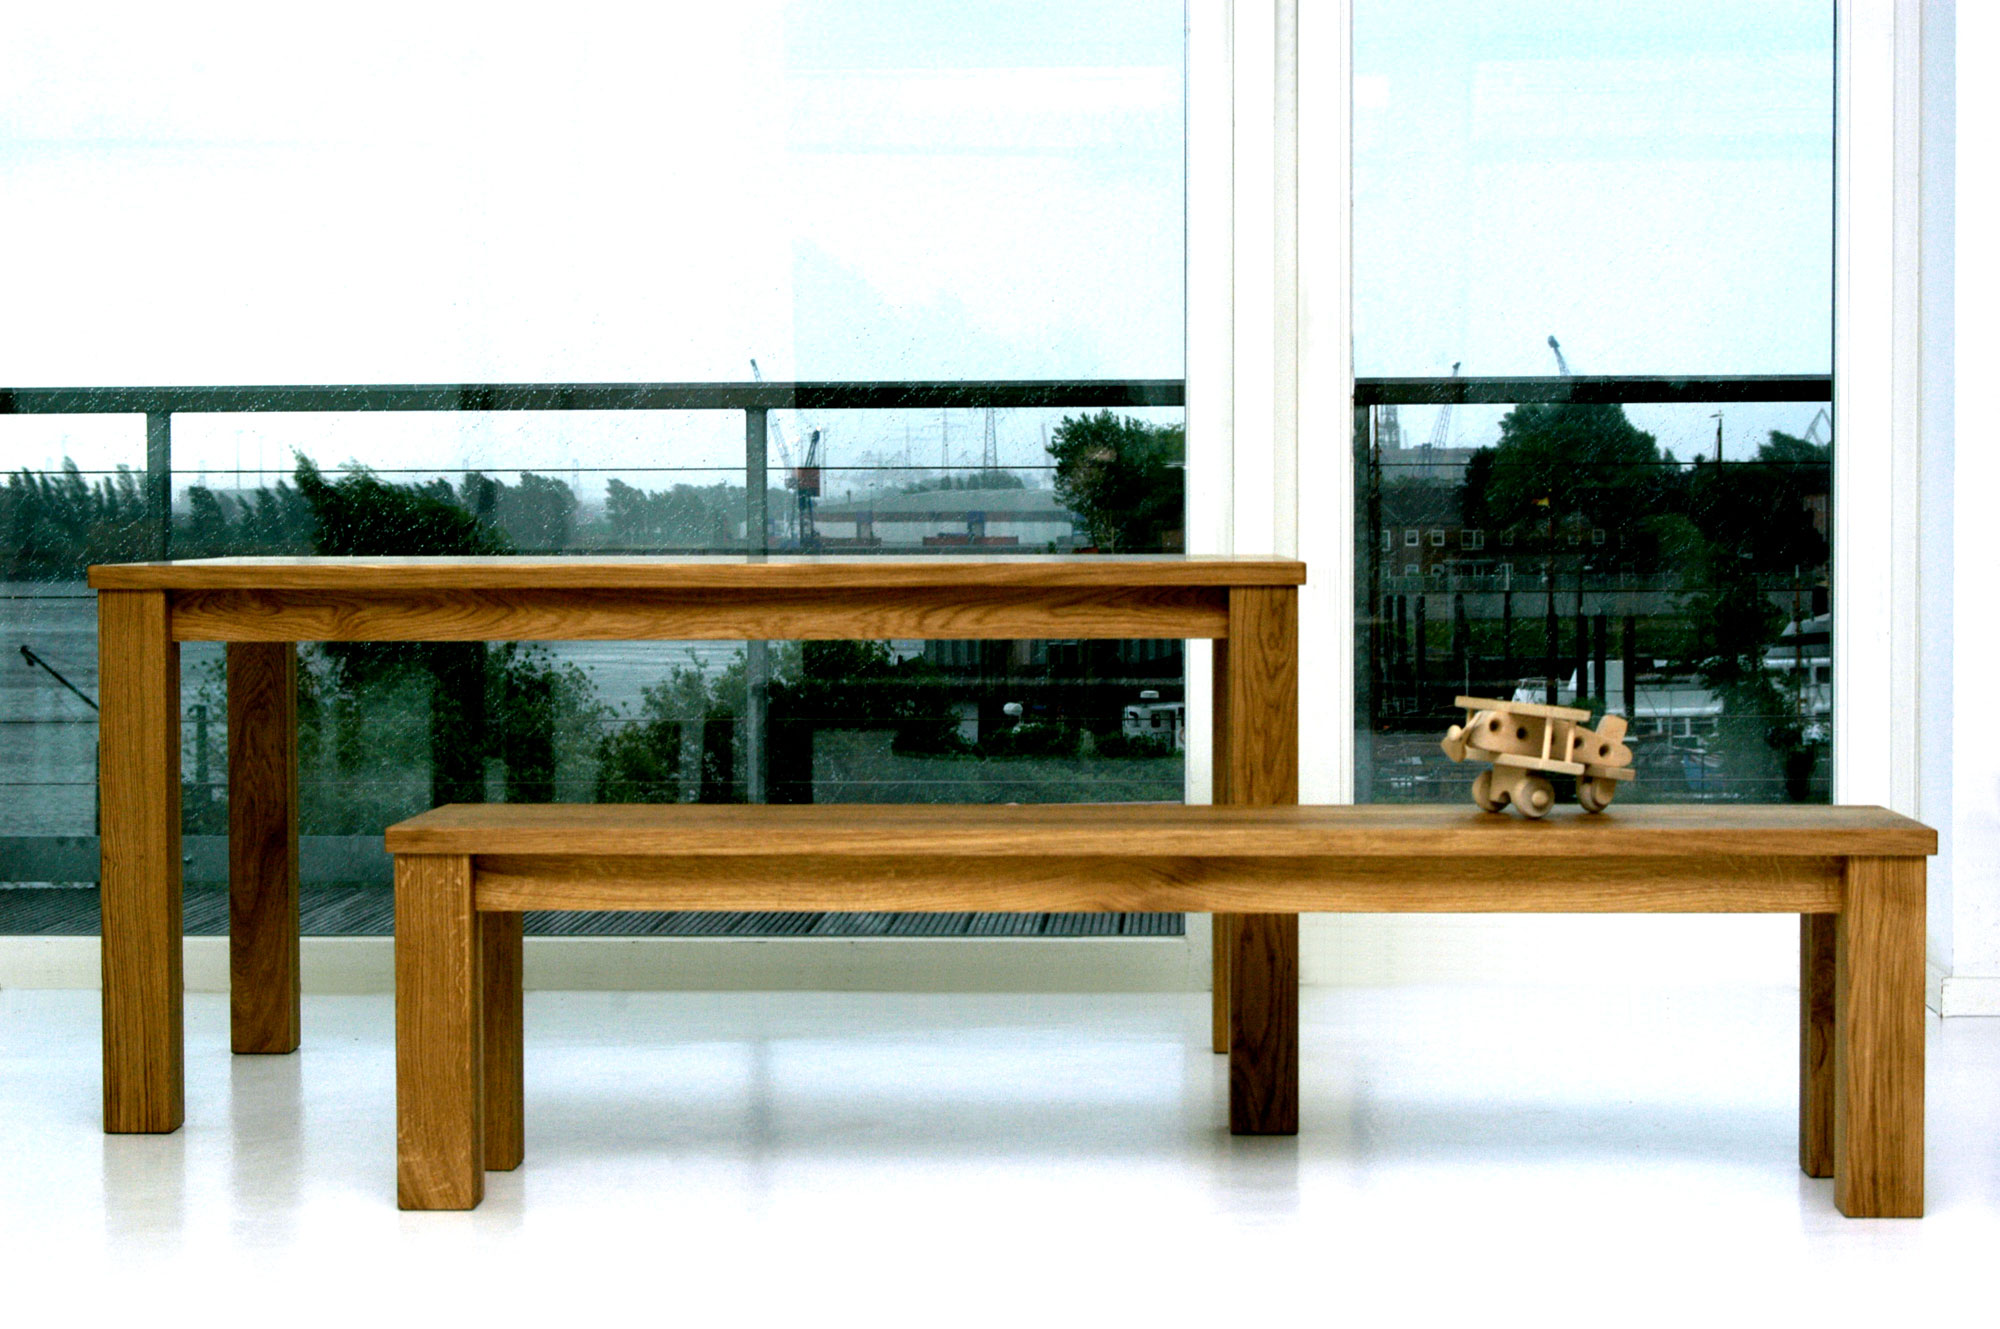 Tailor-Made Wood Table FORTE 3 B9X9 0064 custom made in solid wood by vitamin design